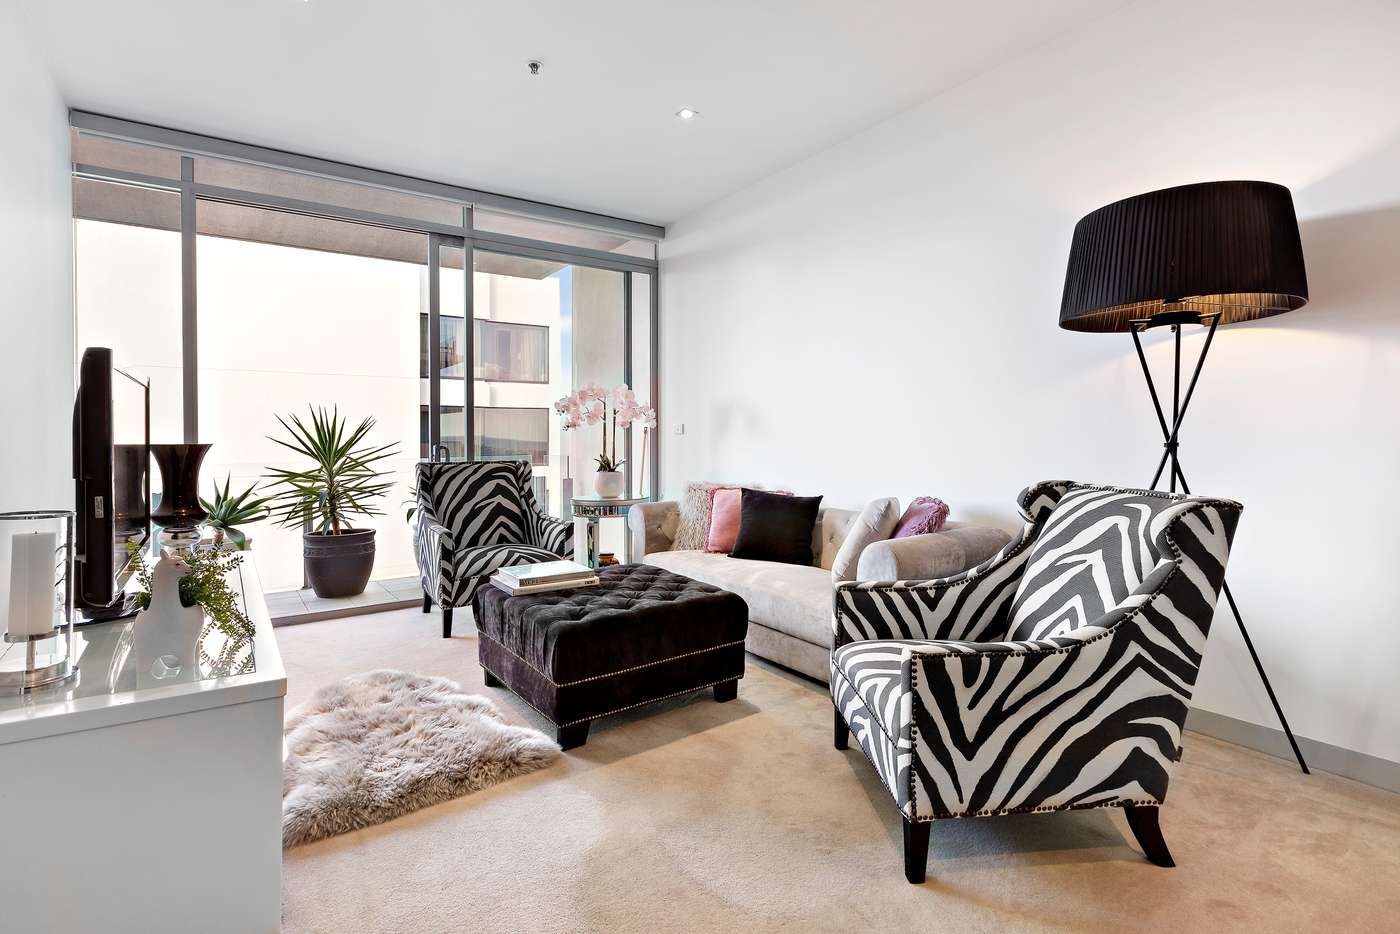 Main view of Homely apartment listing, 905/1 Roy Street, Melbourne VIC 3004